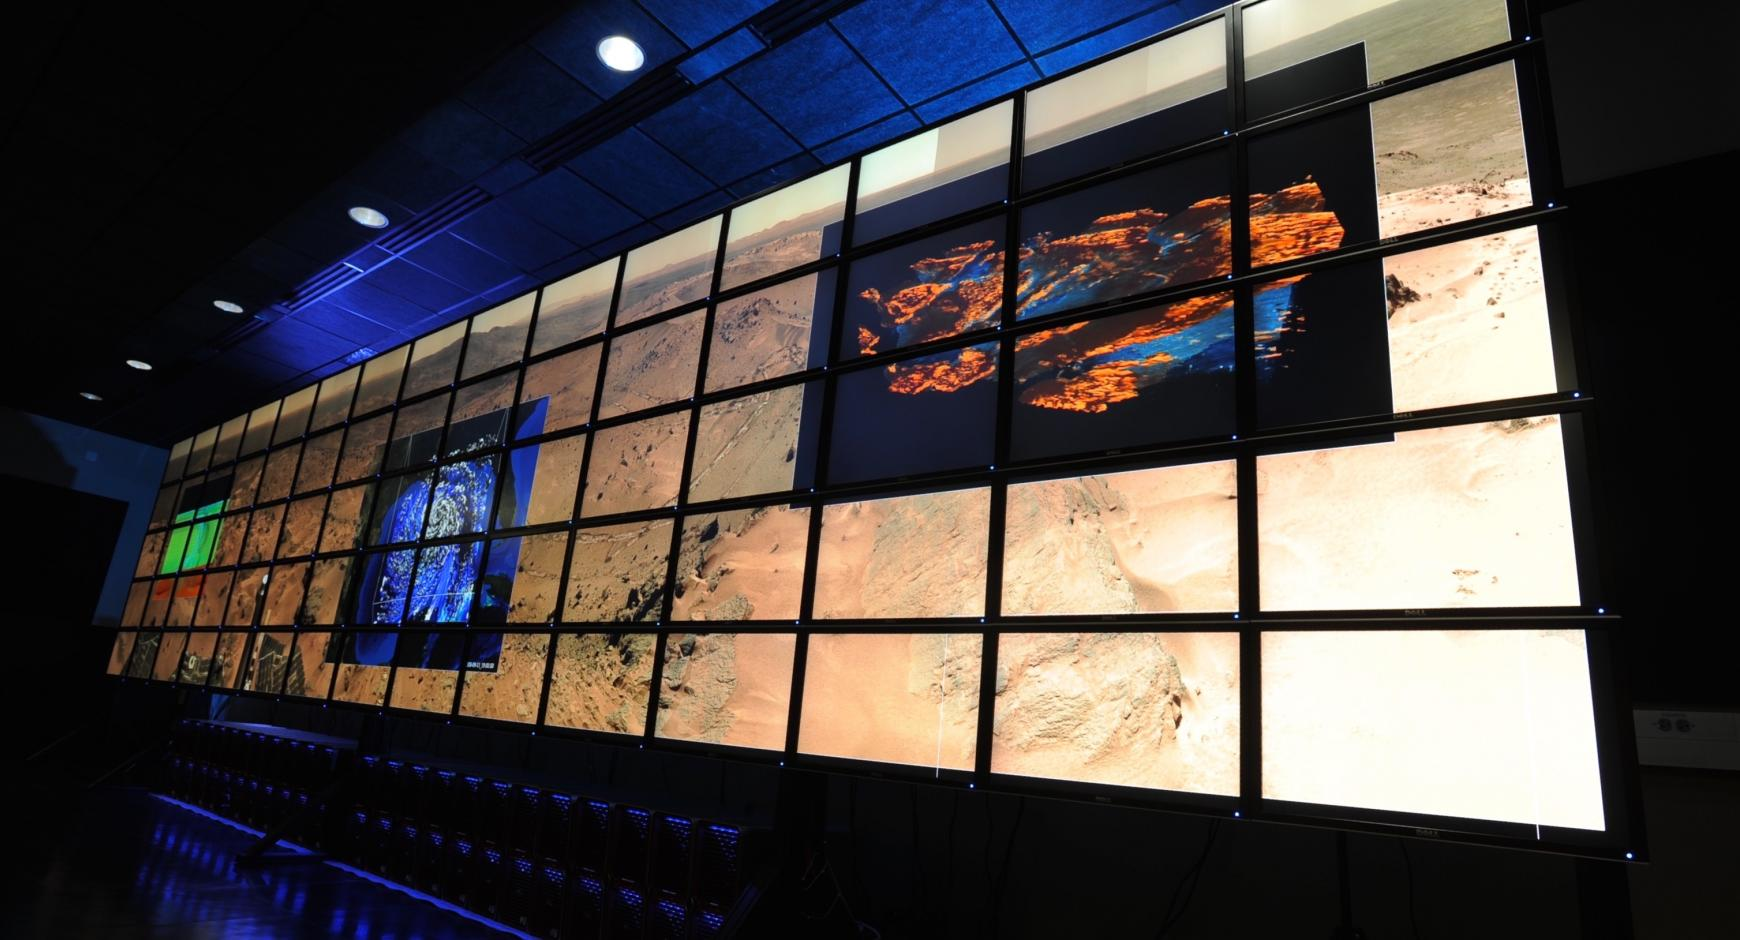 Large visualization screen used to explore and present scientific data.